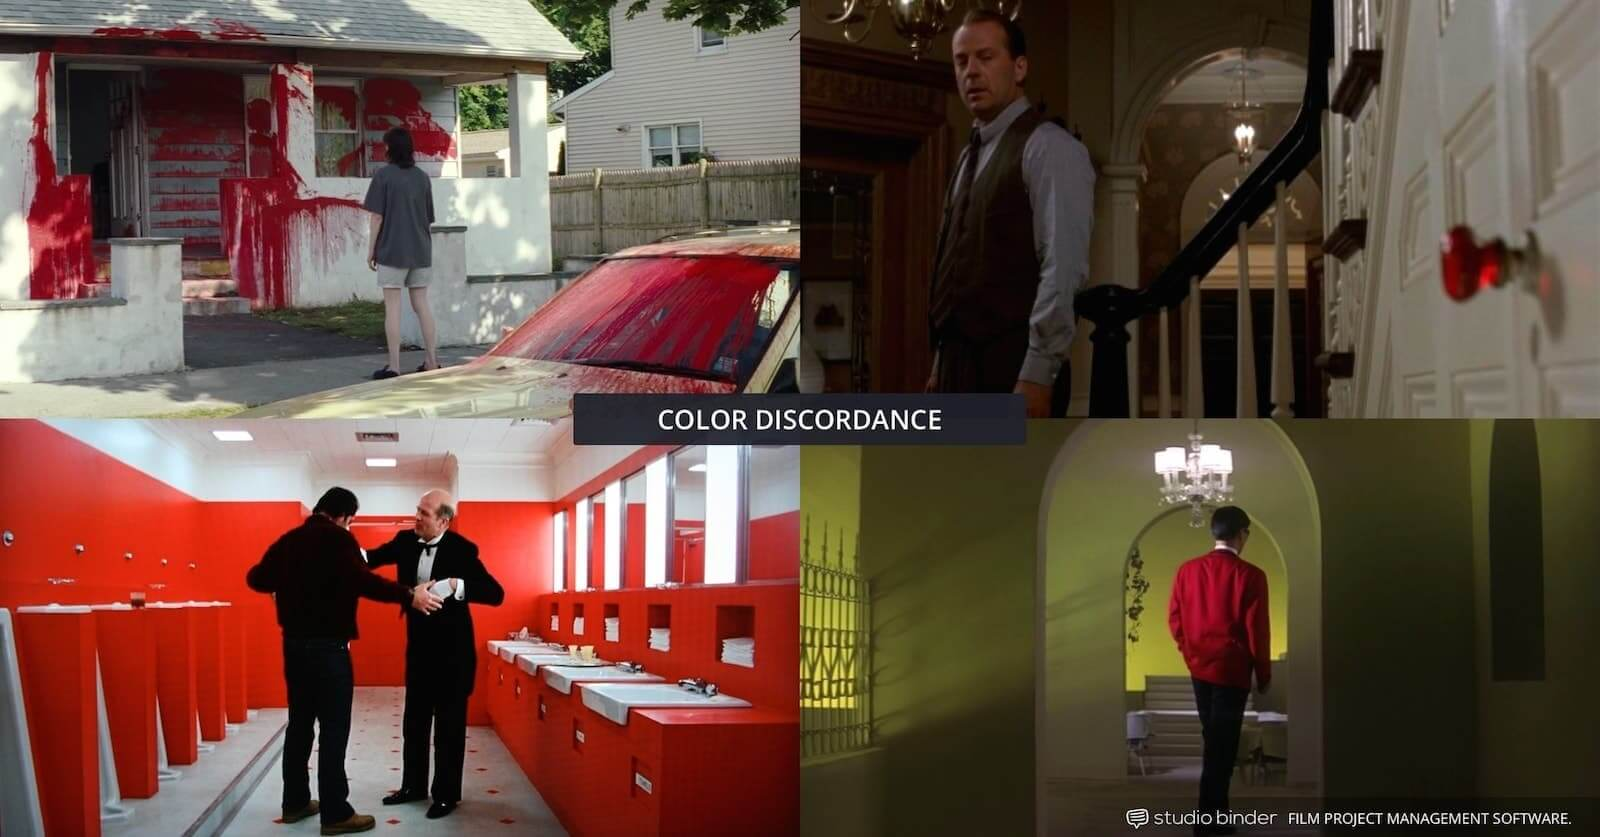 How to Use Color in Film - Movie Color Palette - Color Discordance - Multiple Examples